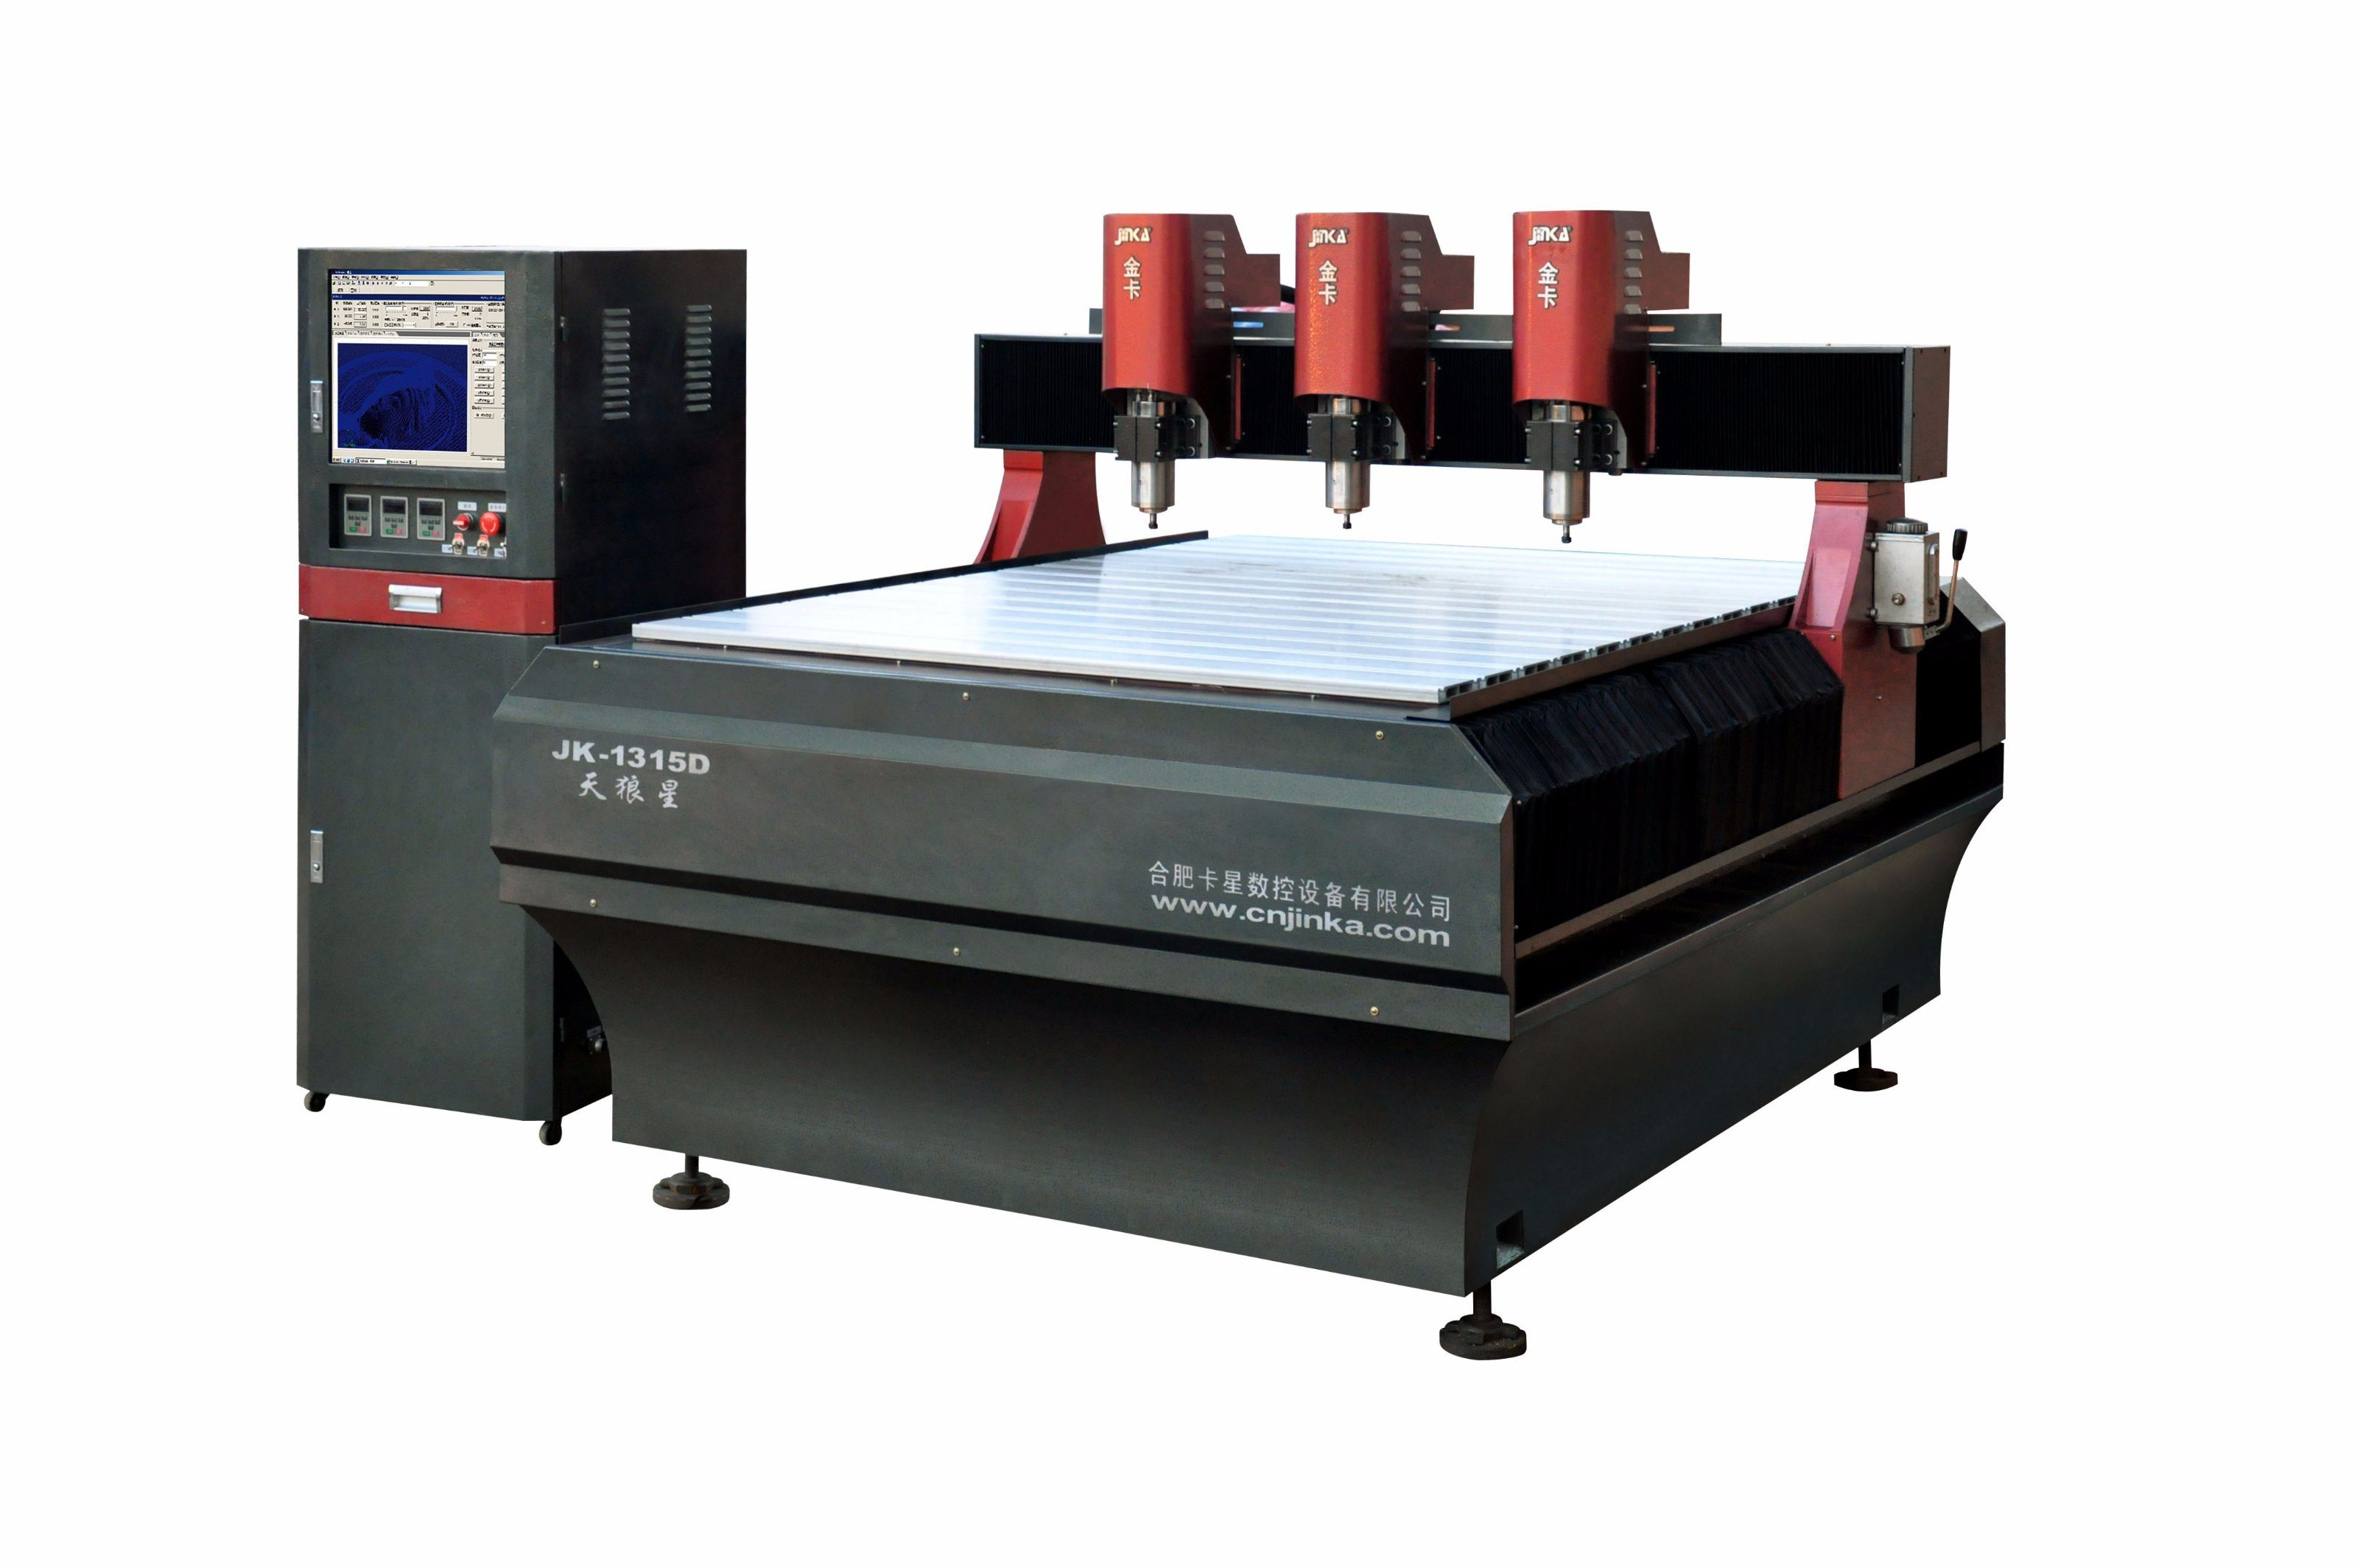 Competitive Jk-1315D Rolling Ball Screw Advertising Engraver CNC Router